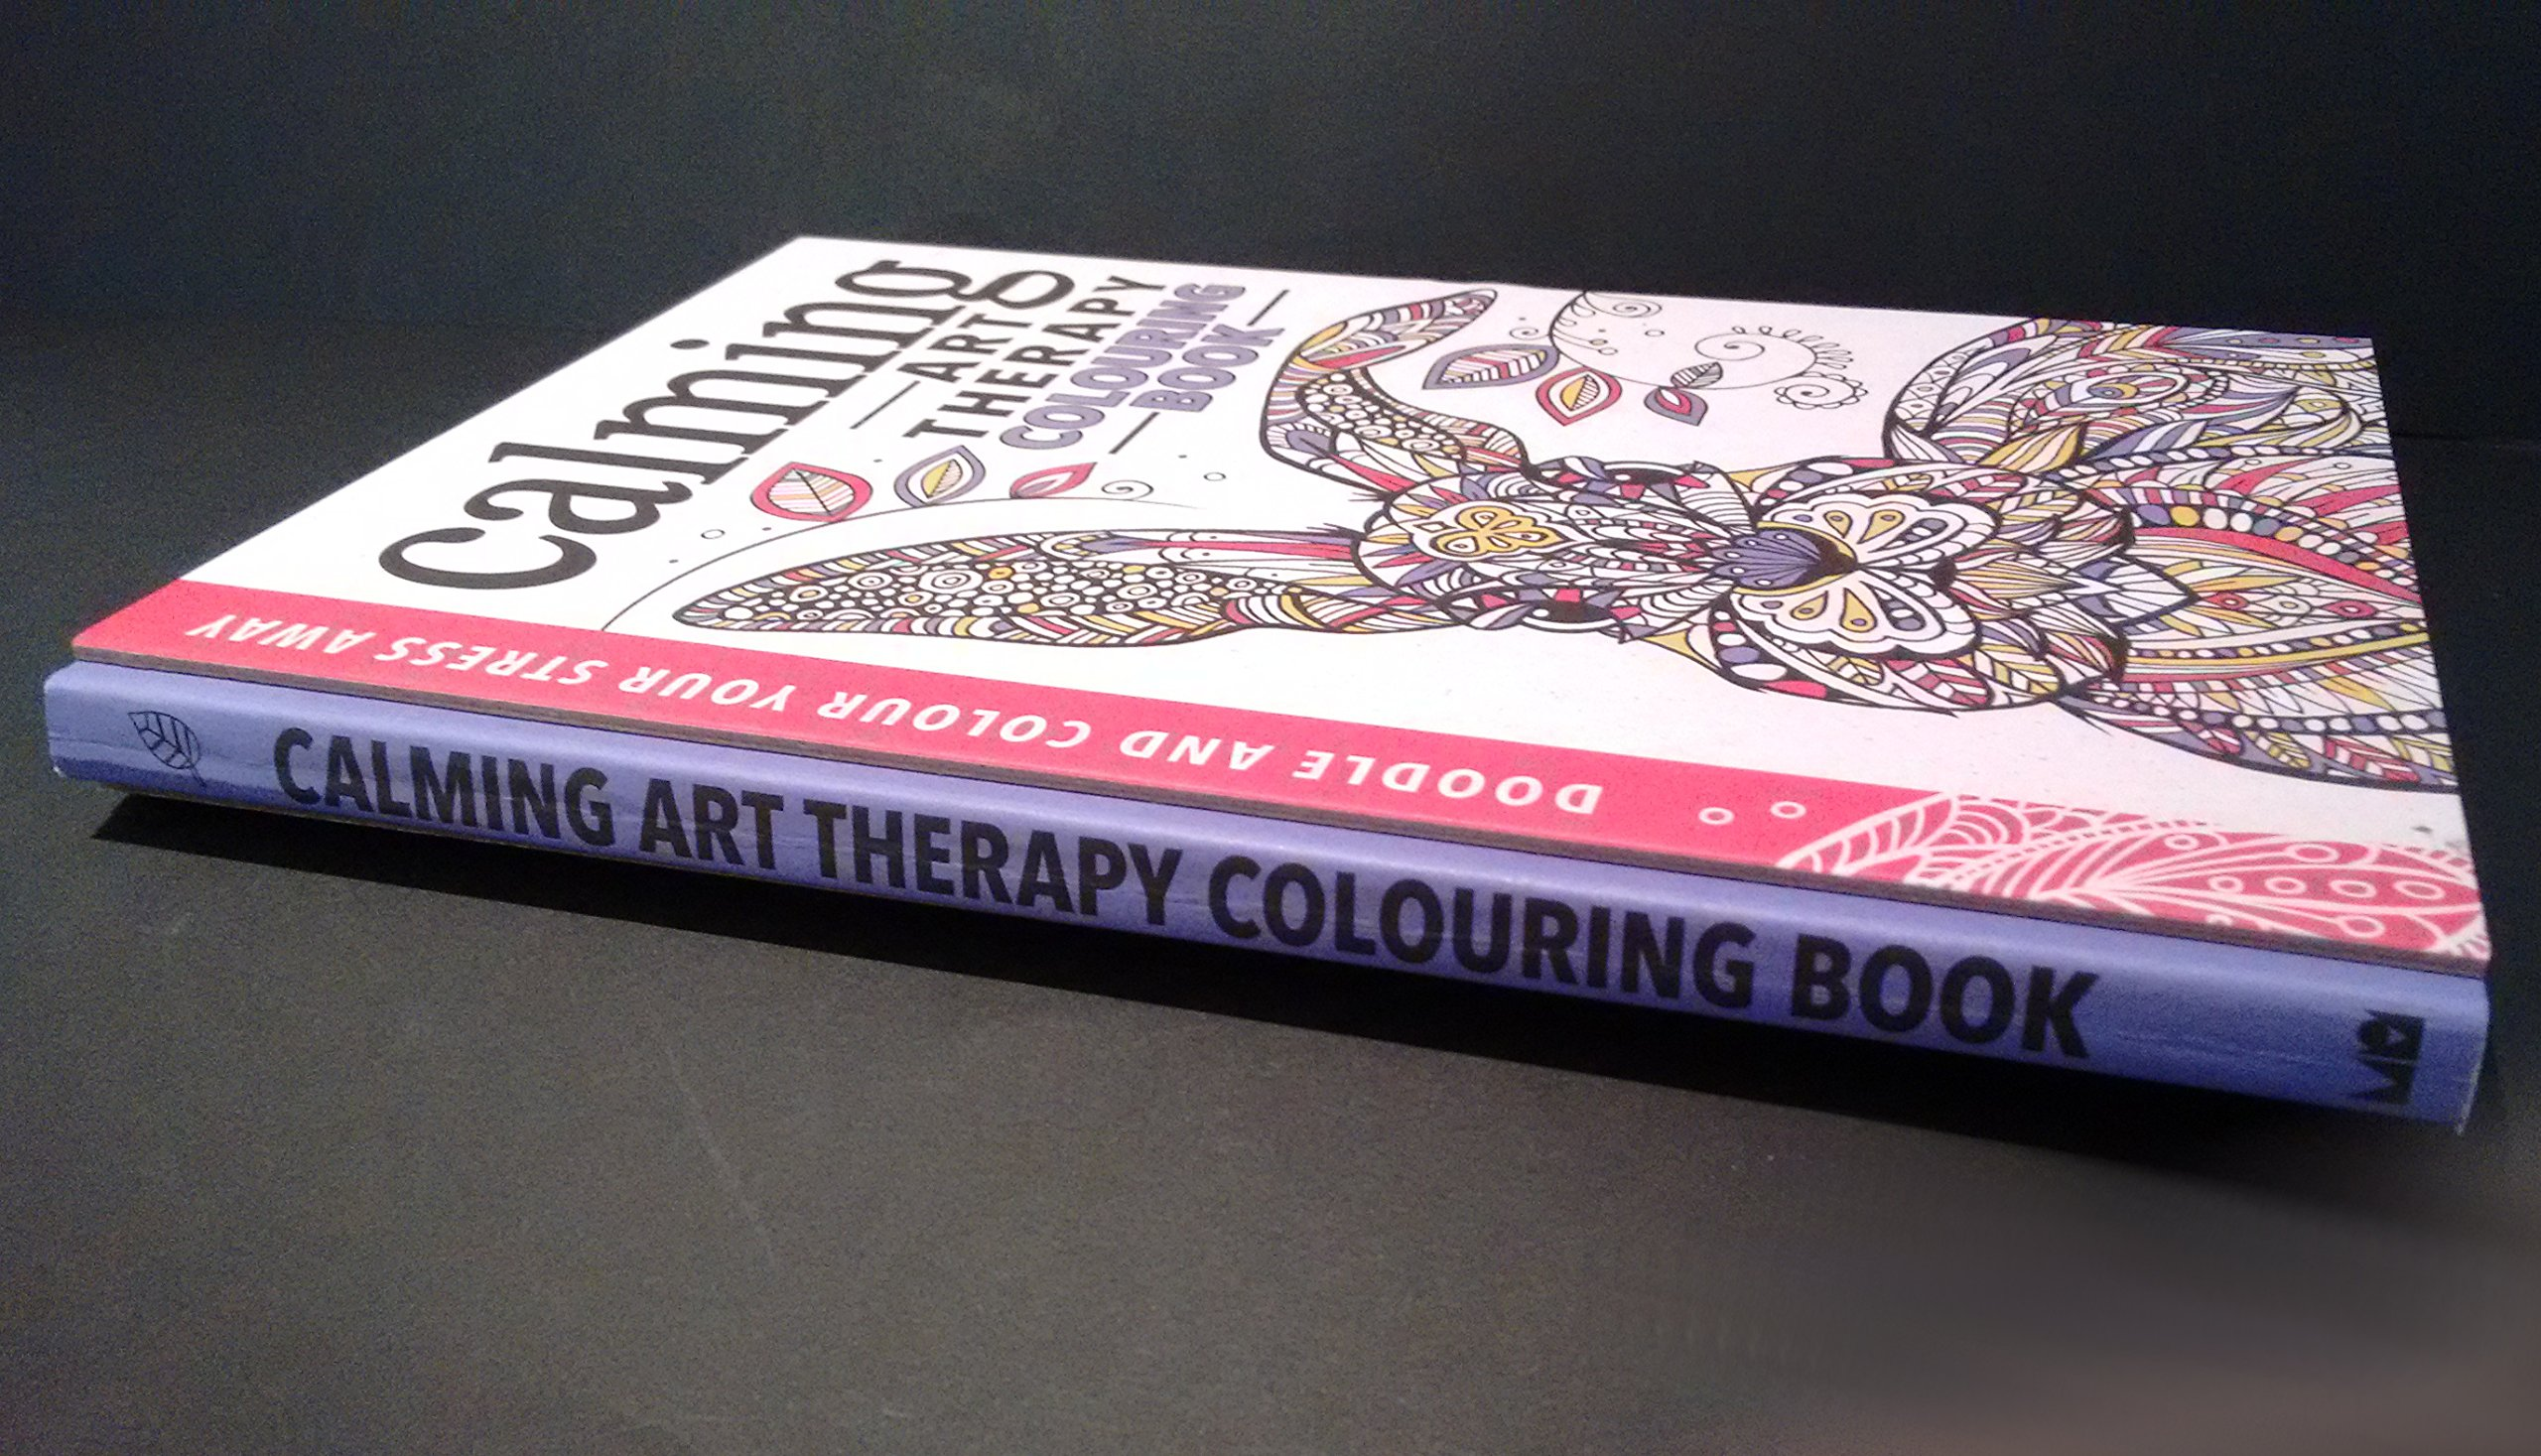 Art therapy coloring book michael omara - Calming Art Therapy Doodle And Colour Your Stress Away Hannah Davies Cindy Wilde Richard Merritt 9781782434214 Amazon Com Books